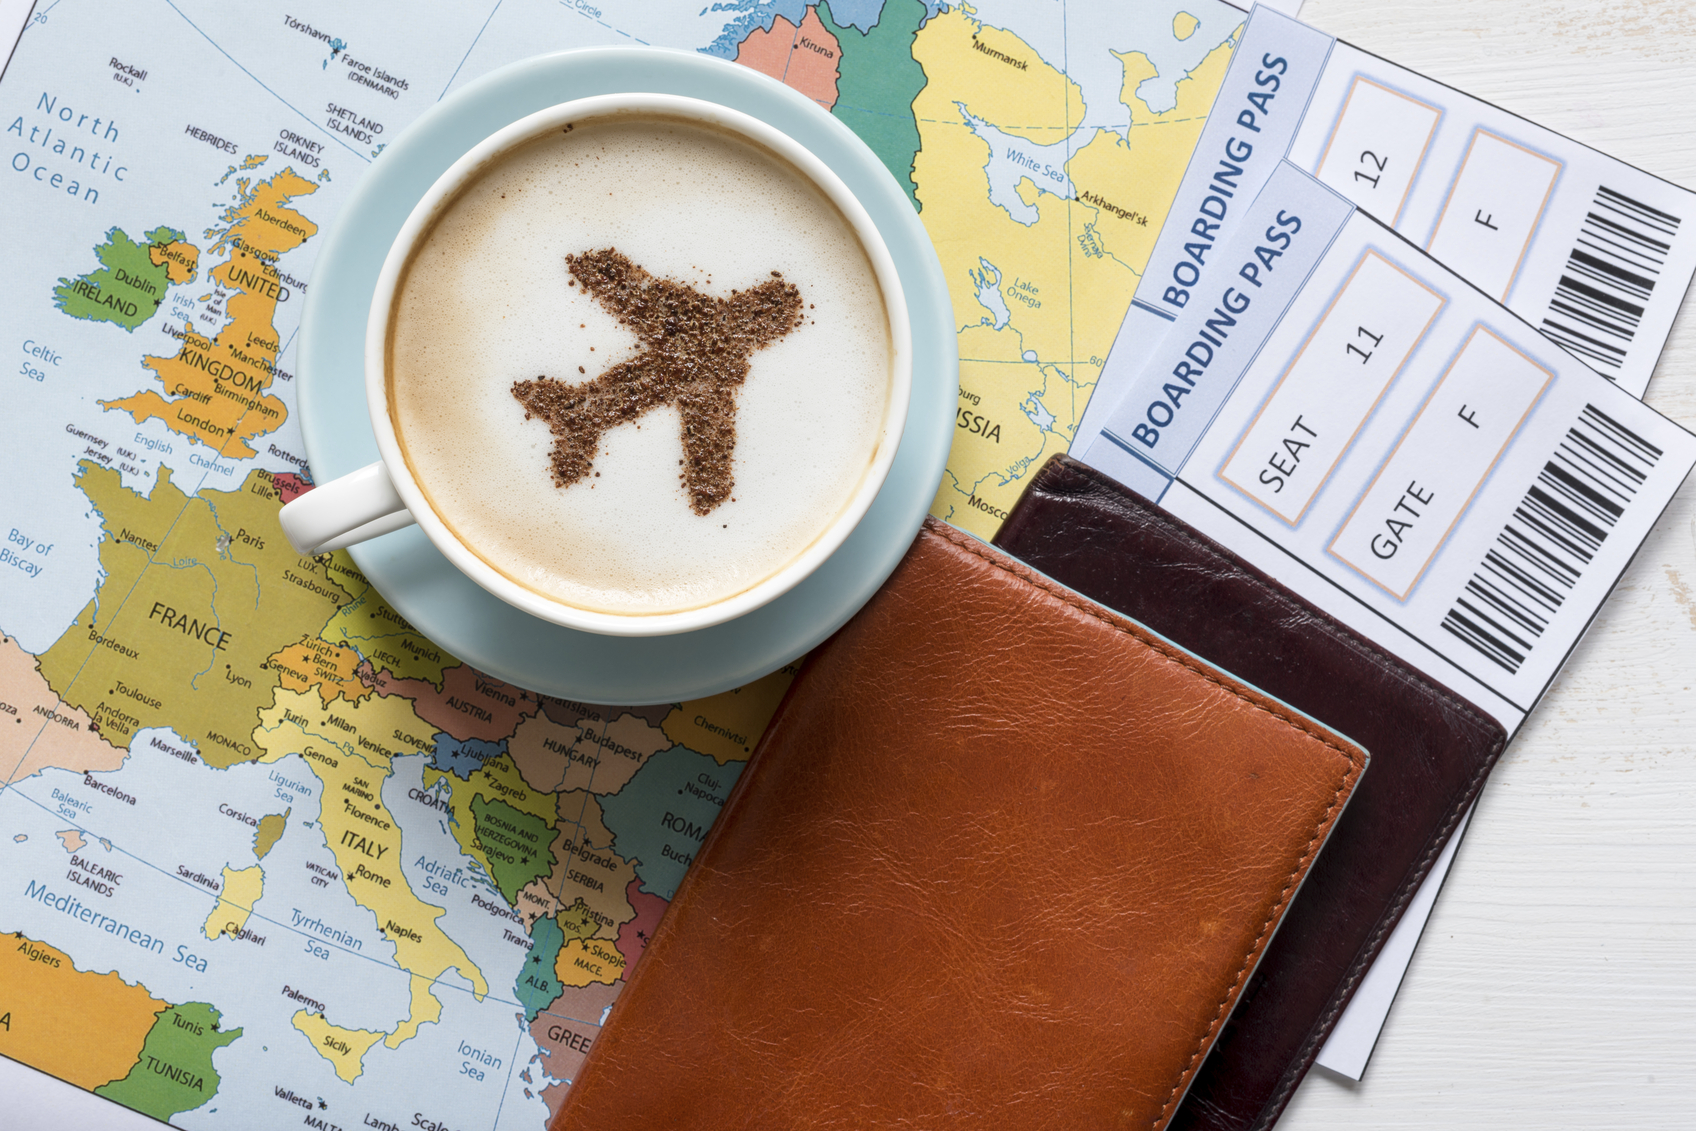 Airplane made of cinnamon in cappuccino, Passports and Europe map